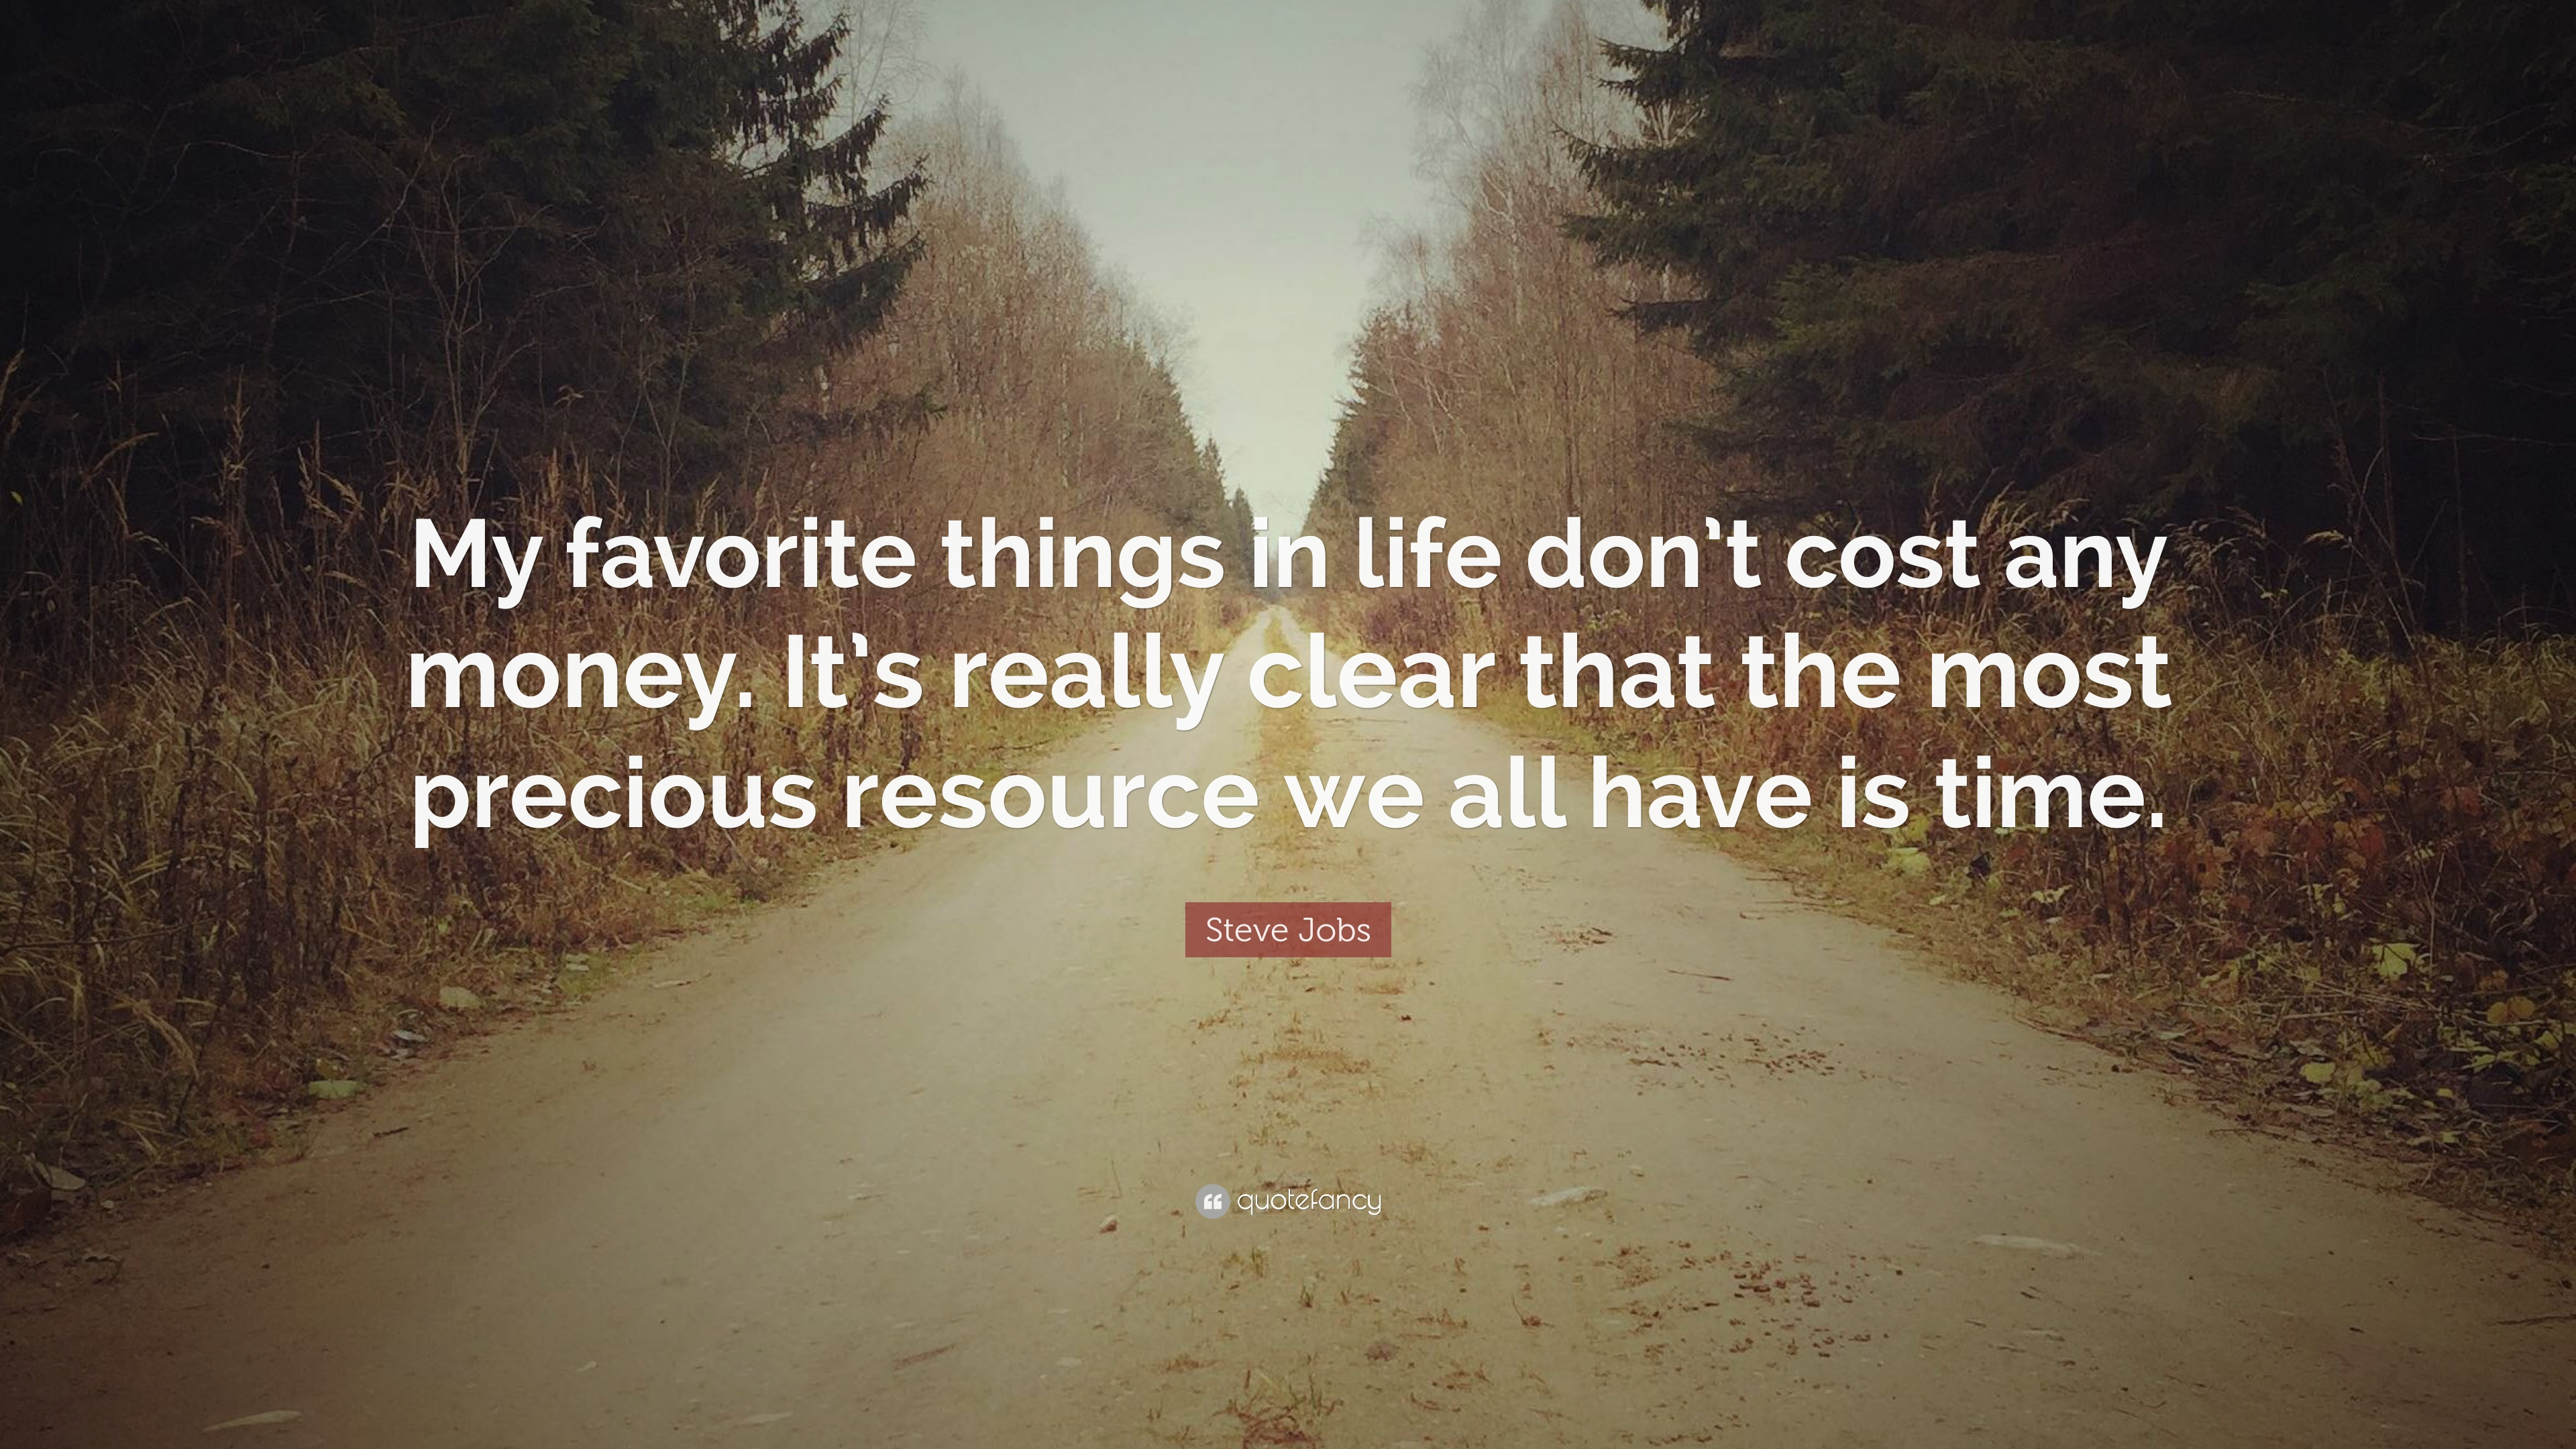 Best Quotes Of All Time About Life Quotes About Money 42 Wallpapers  Quotefancy